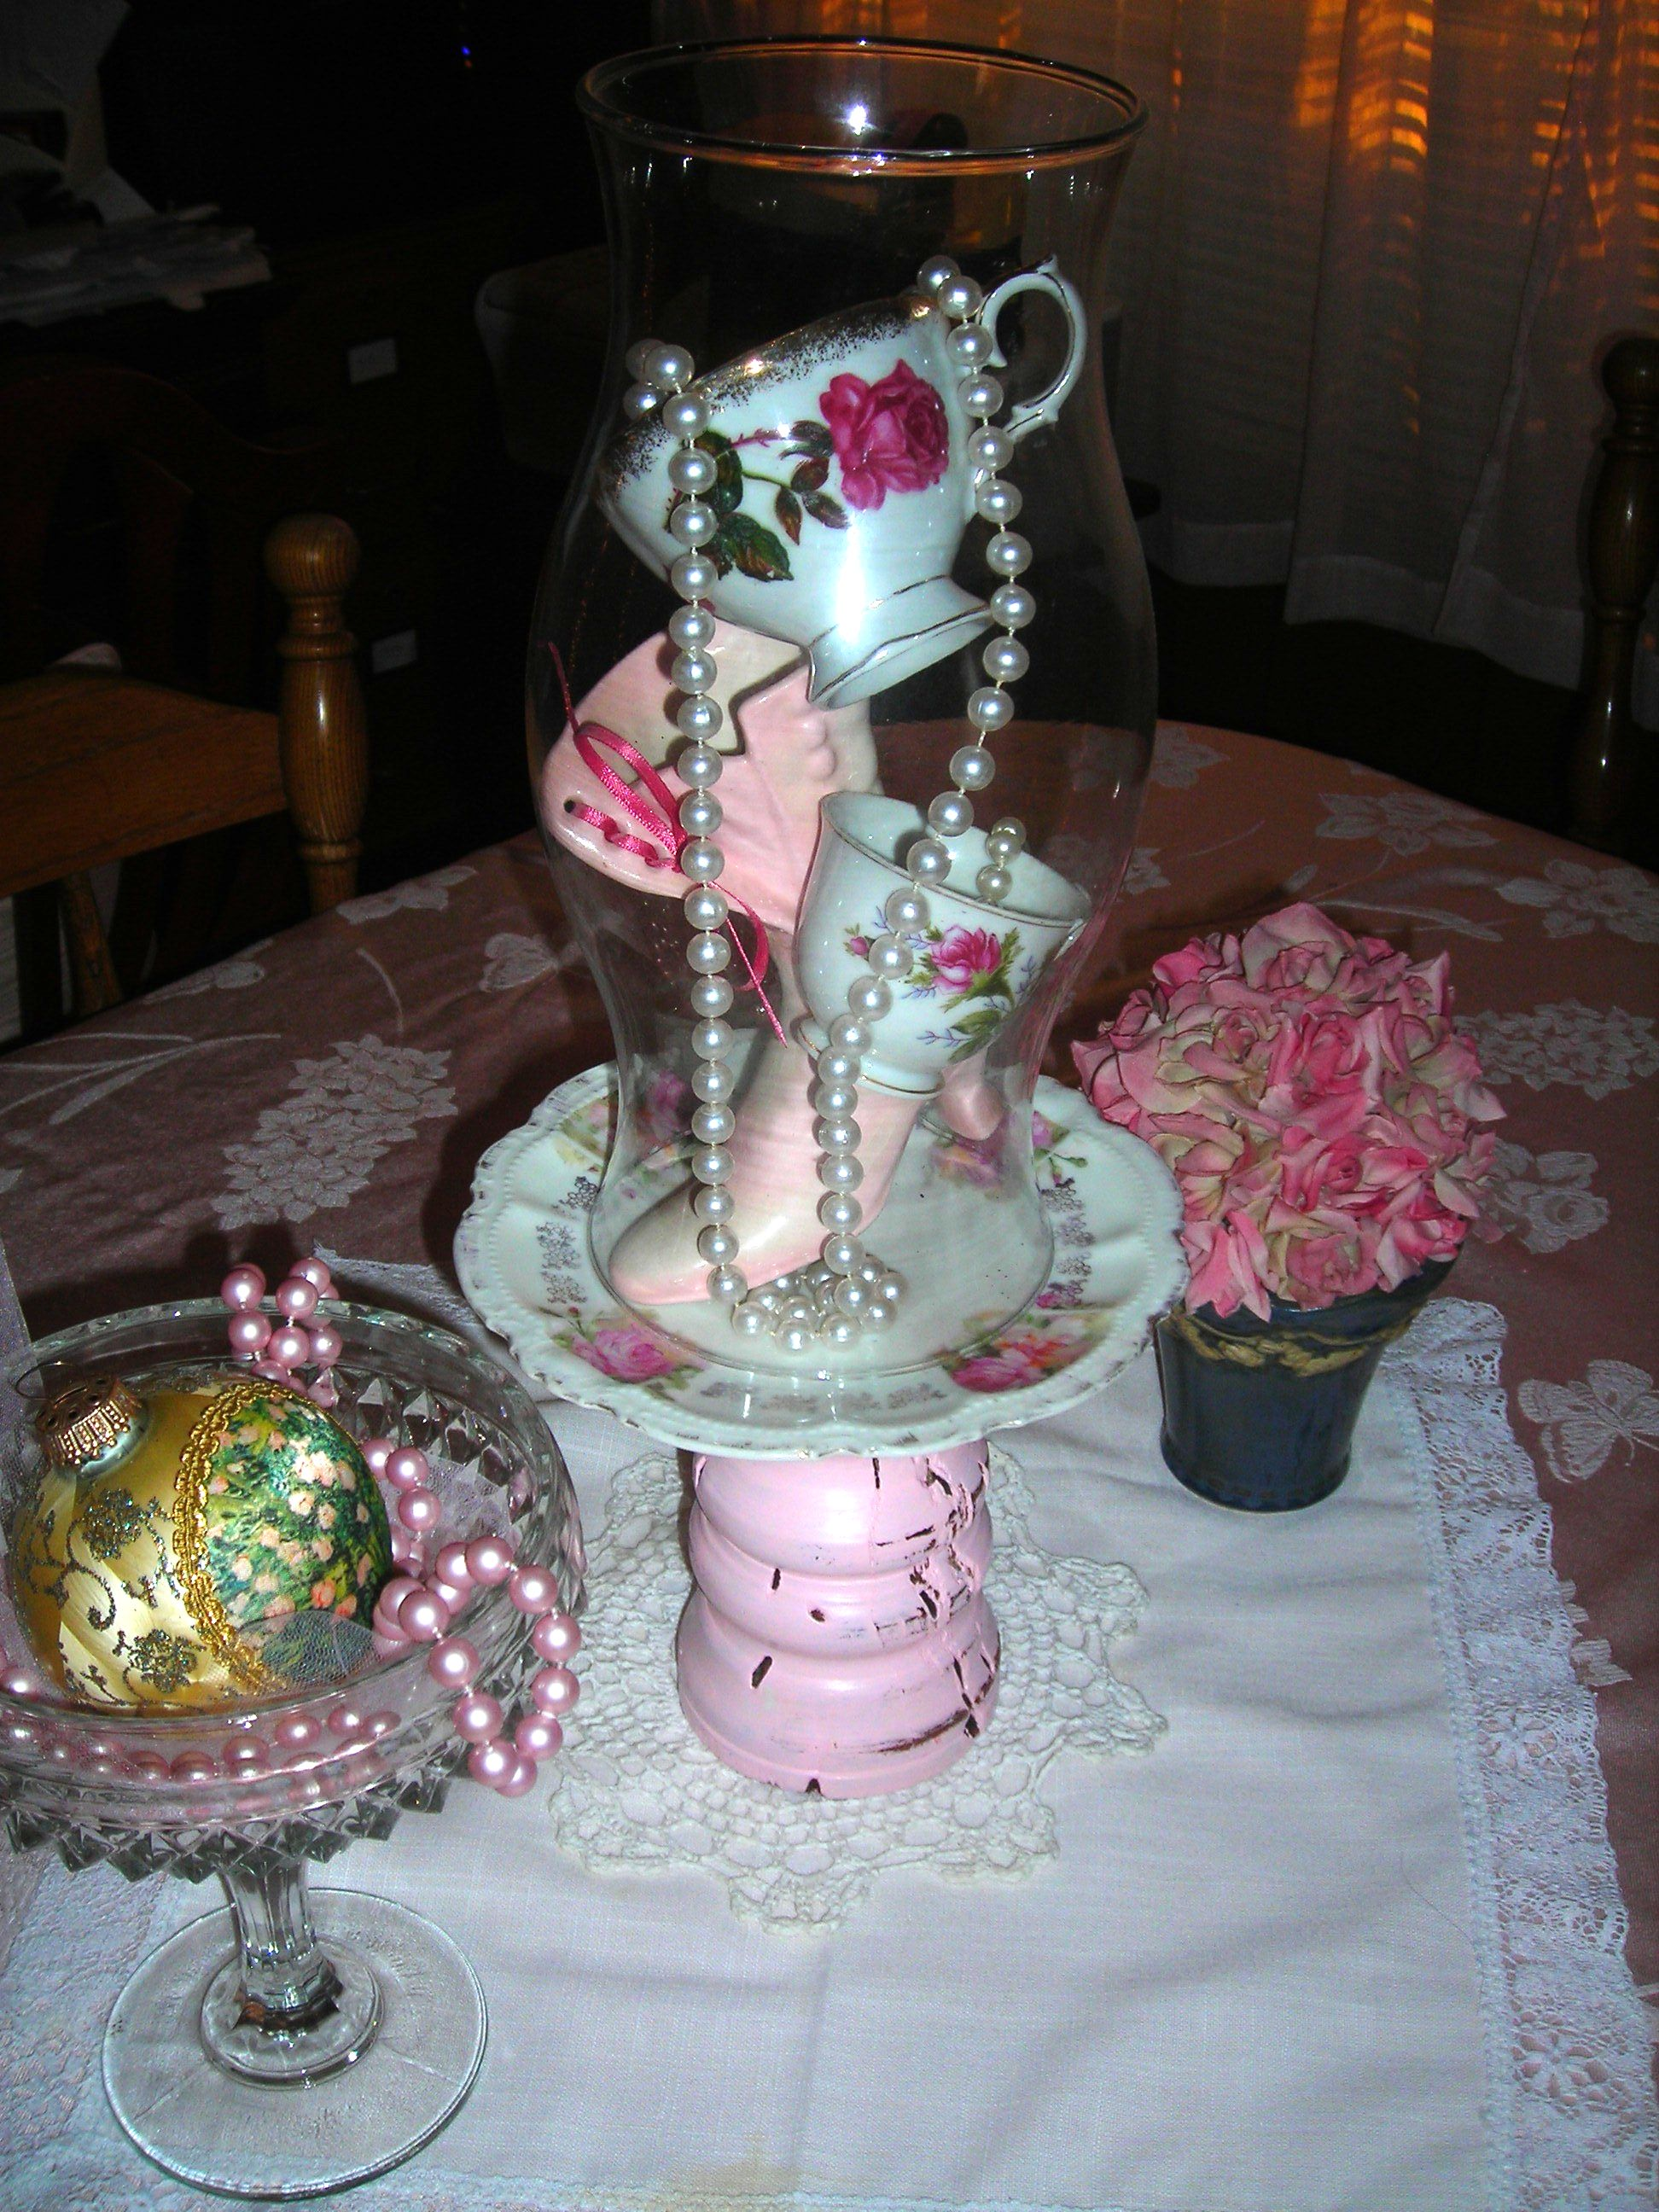 sweet vintage rose cups and pink victorian shoe inside glass shade ... thanks for the ideas, sue!